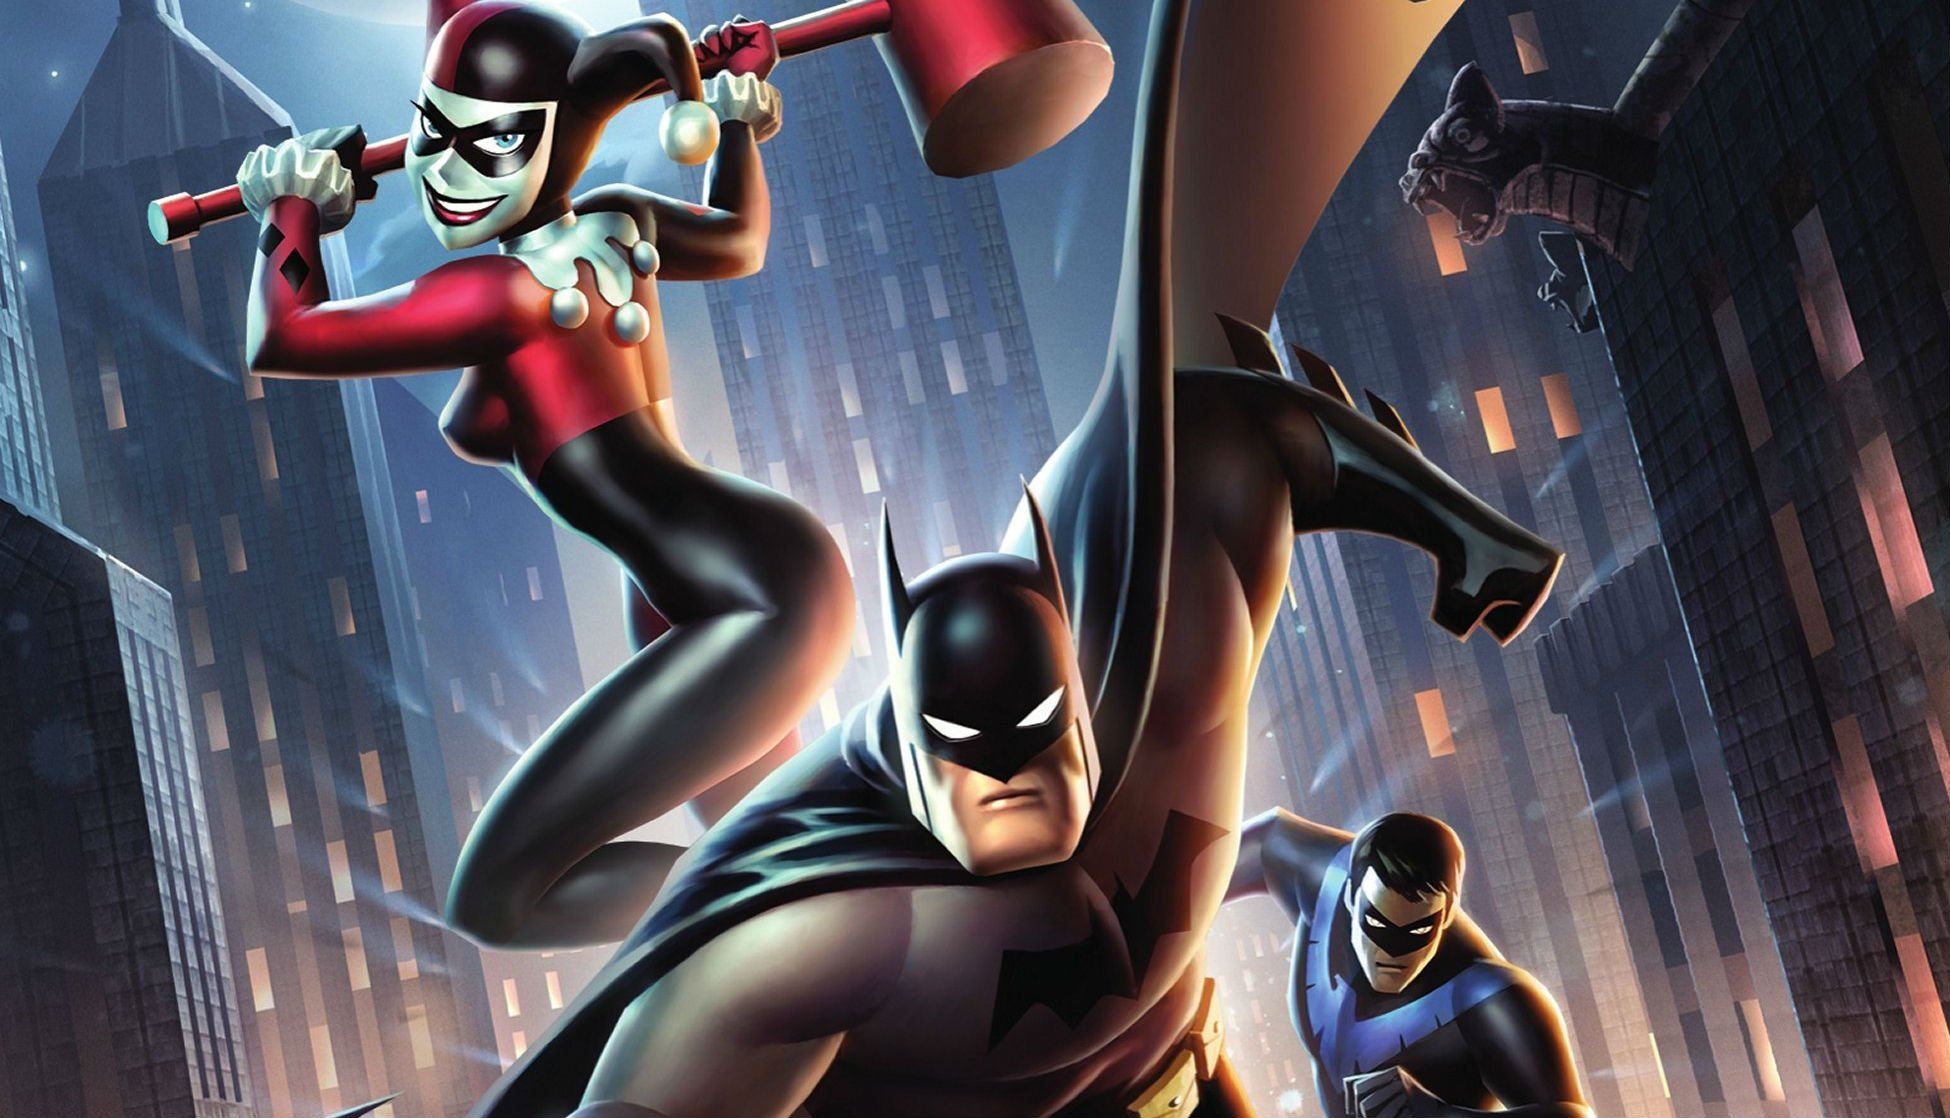 Batman And Harley Quinn Blu-Ray Release Date, Box Art And Extras Revealed